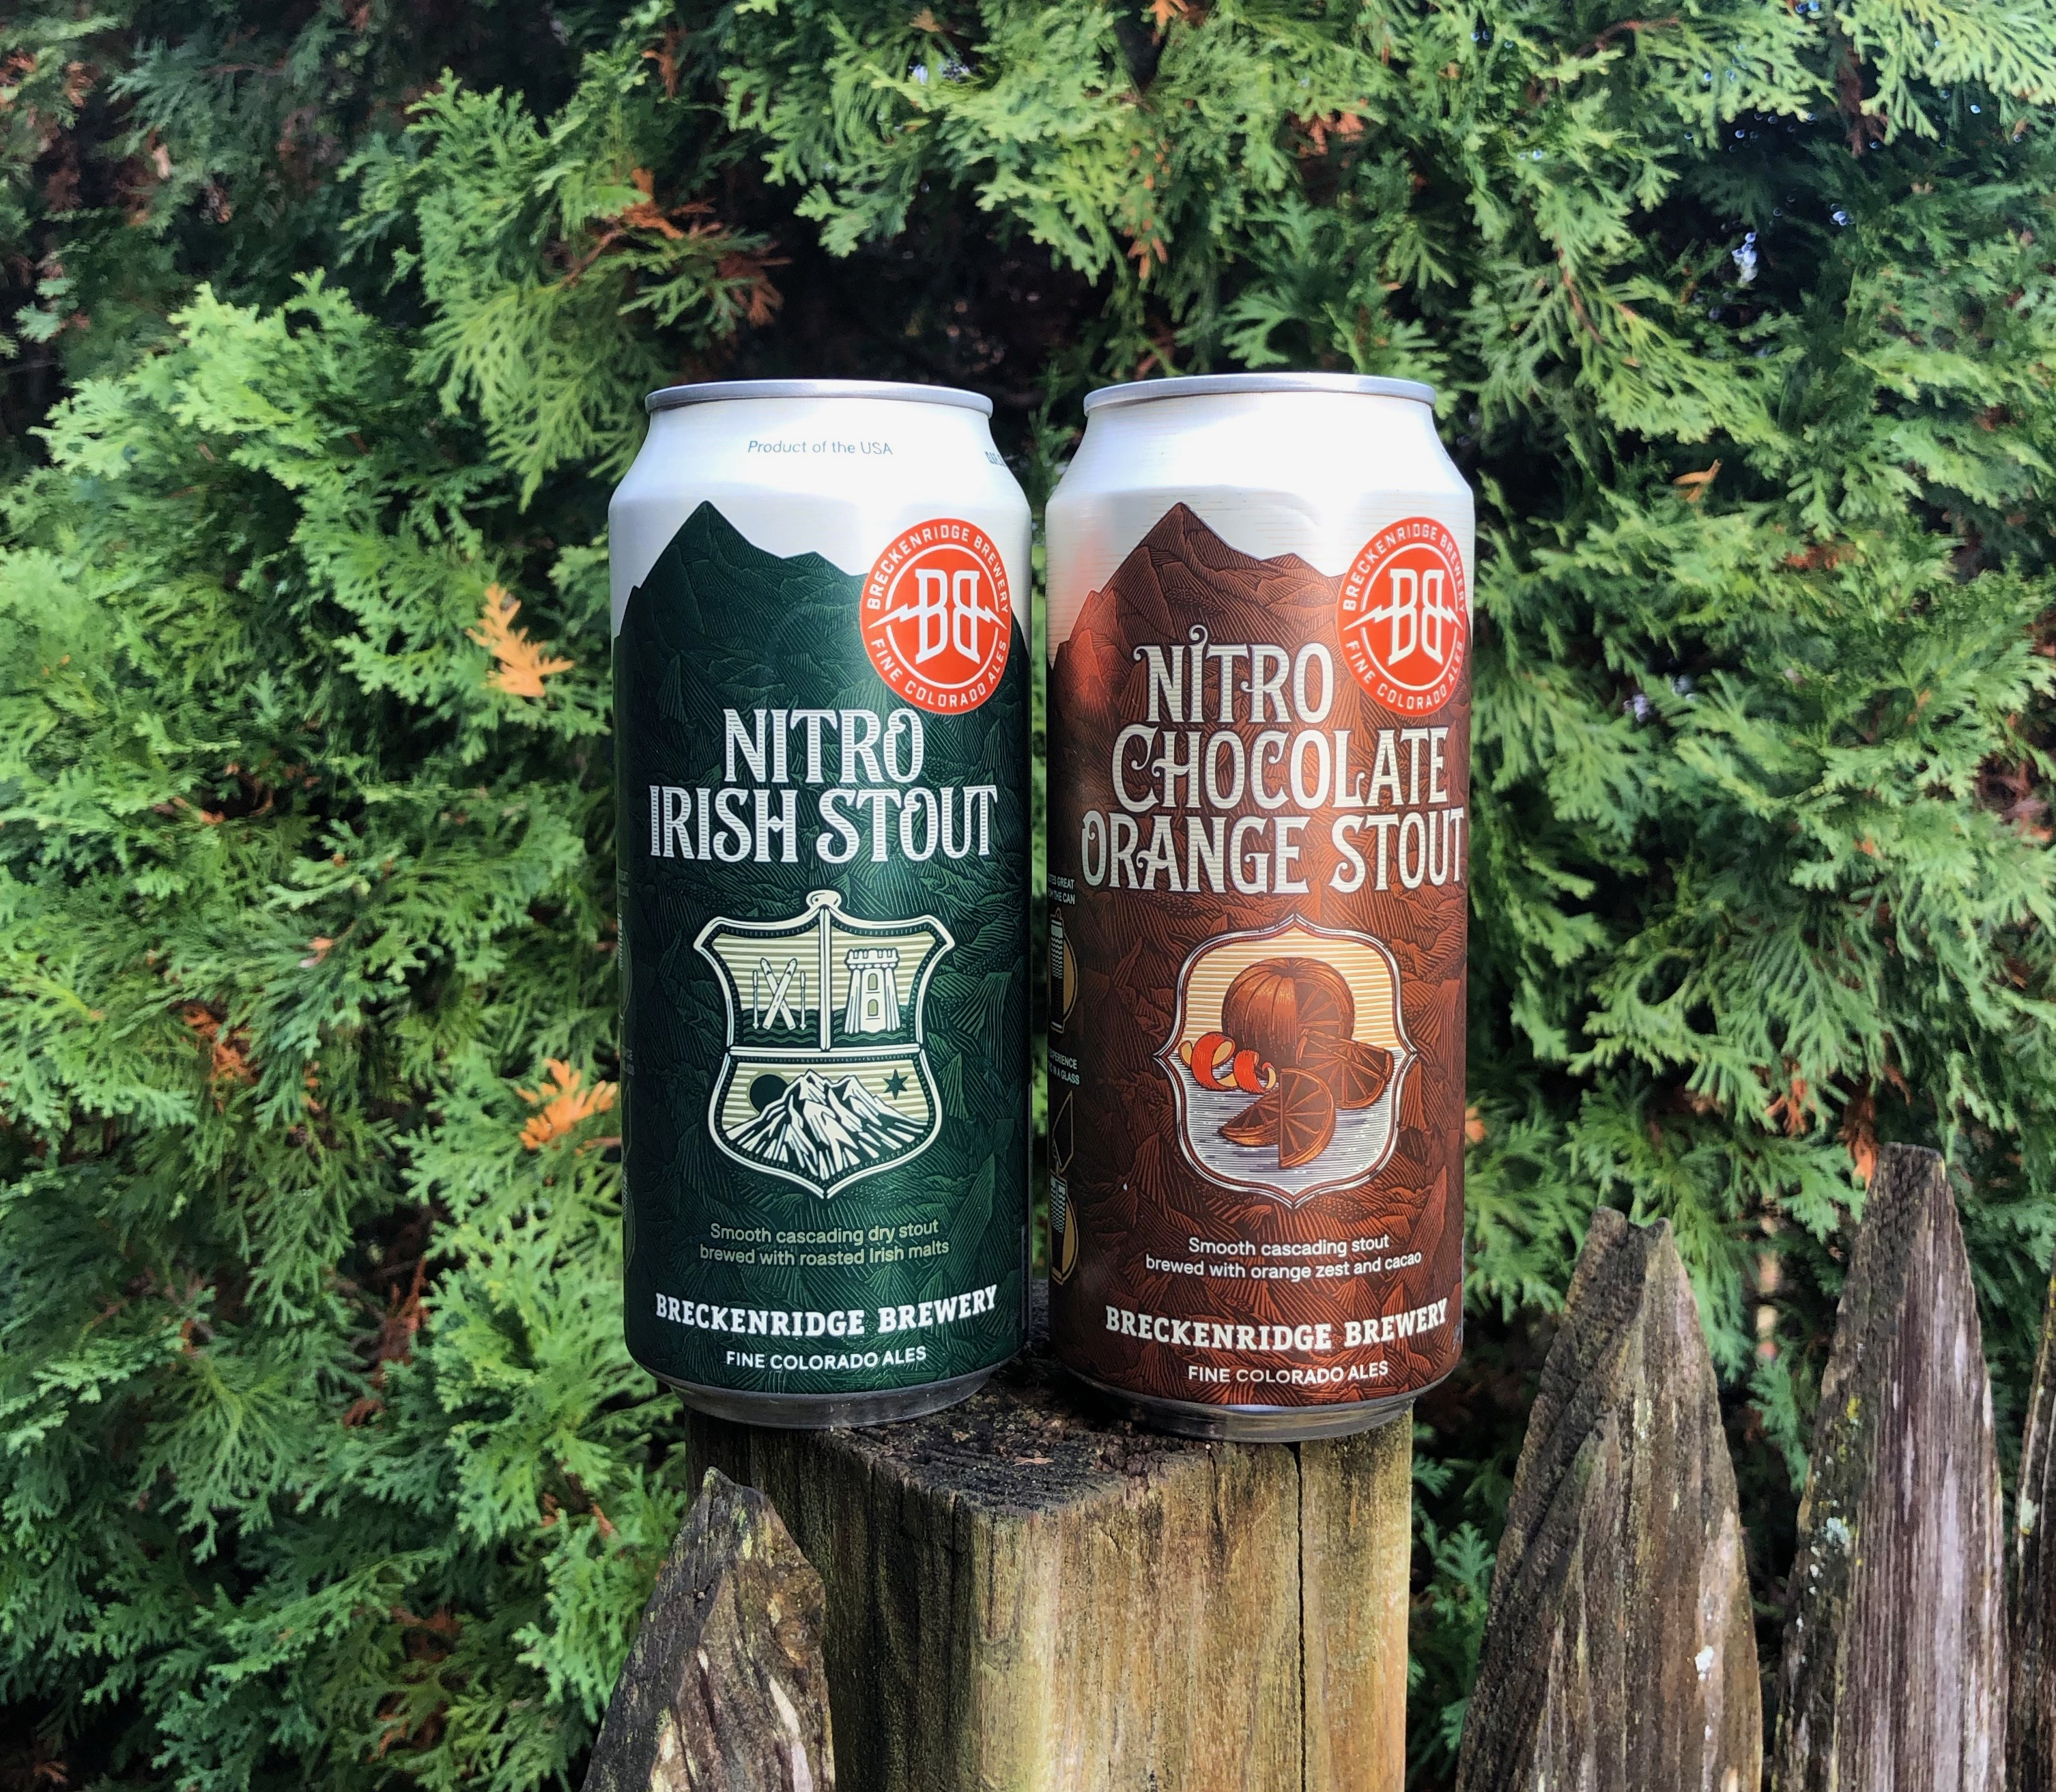 Cans of Breckendridge Brewry Nitro Irish Stout and its new Nitro Chocolate Orange Stout.